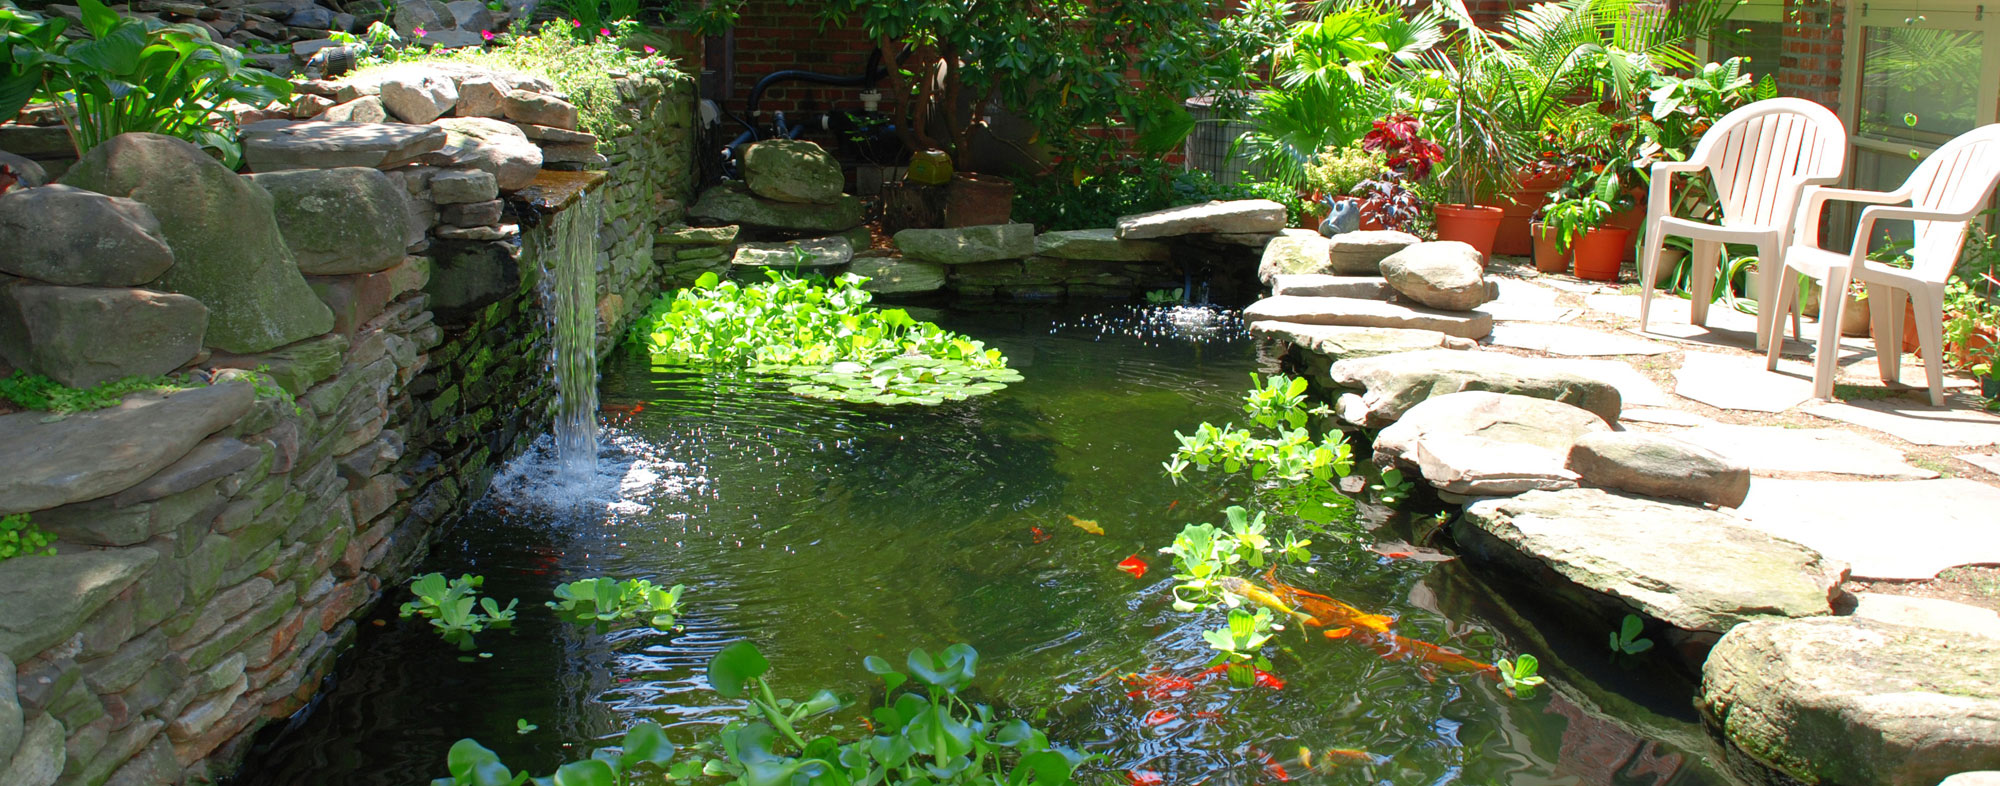 A water garden thoughtfully designed to be habitat for pet fish